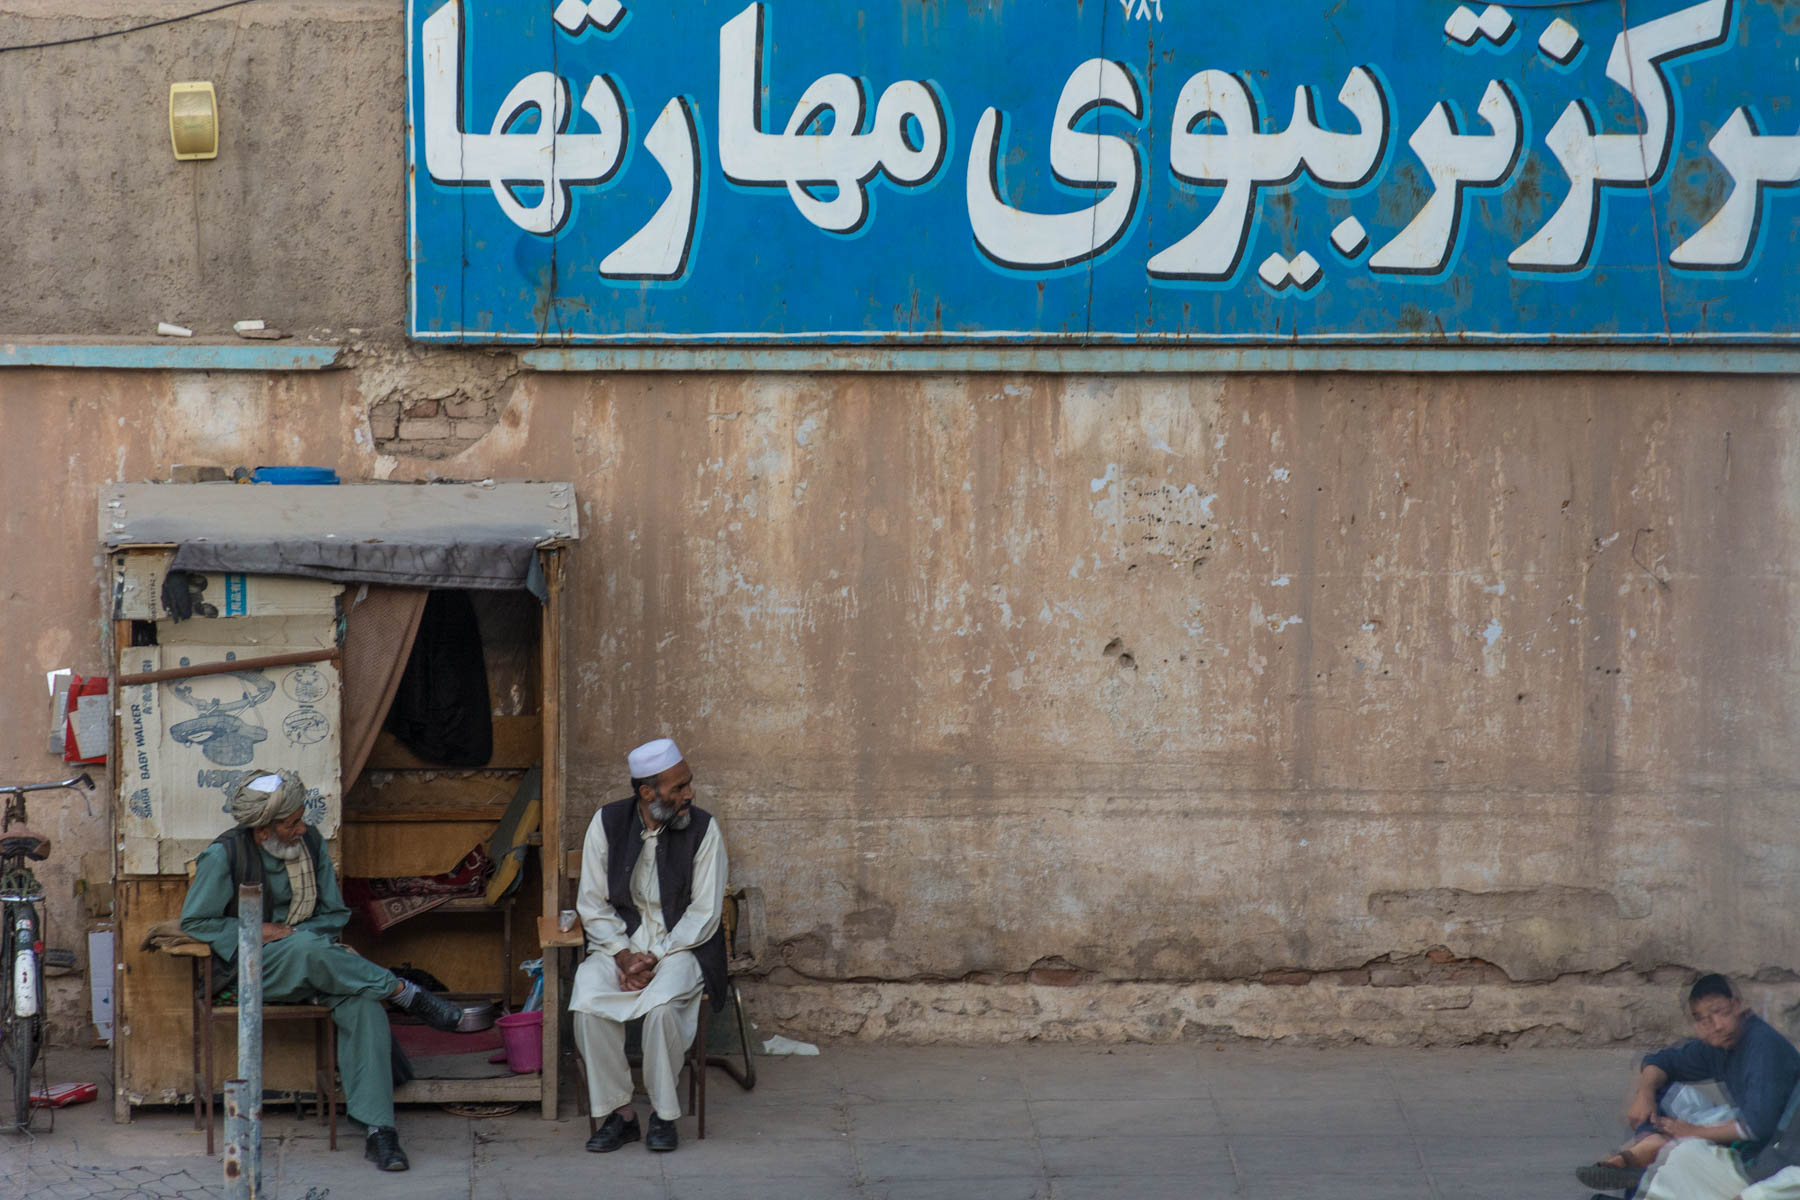 A sign in Dari in Herat, Afghanistan - Lost With Purpose